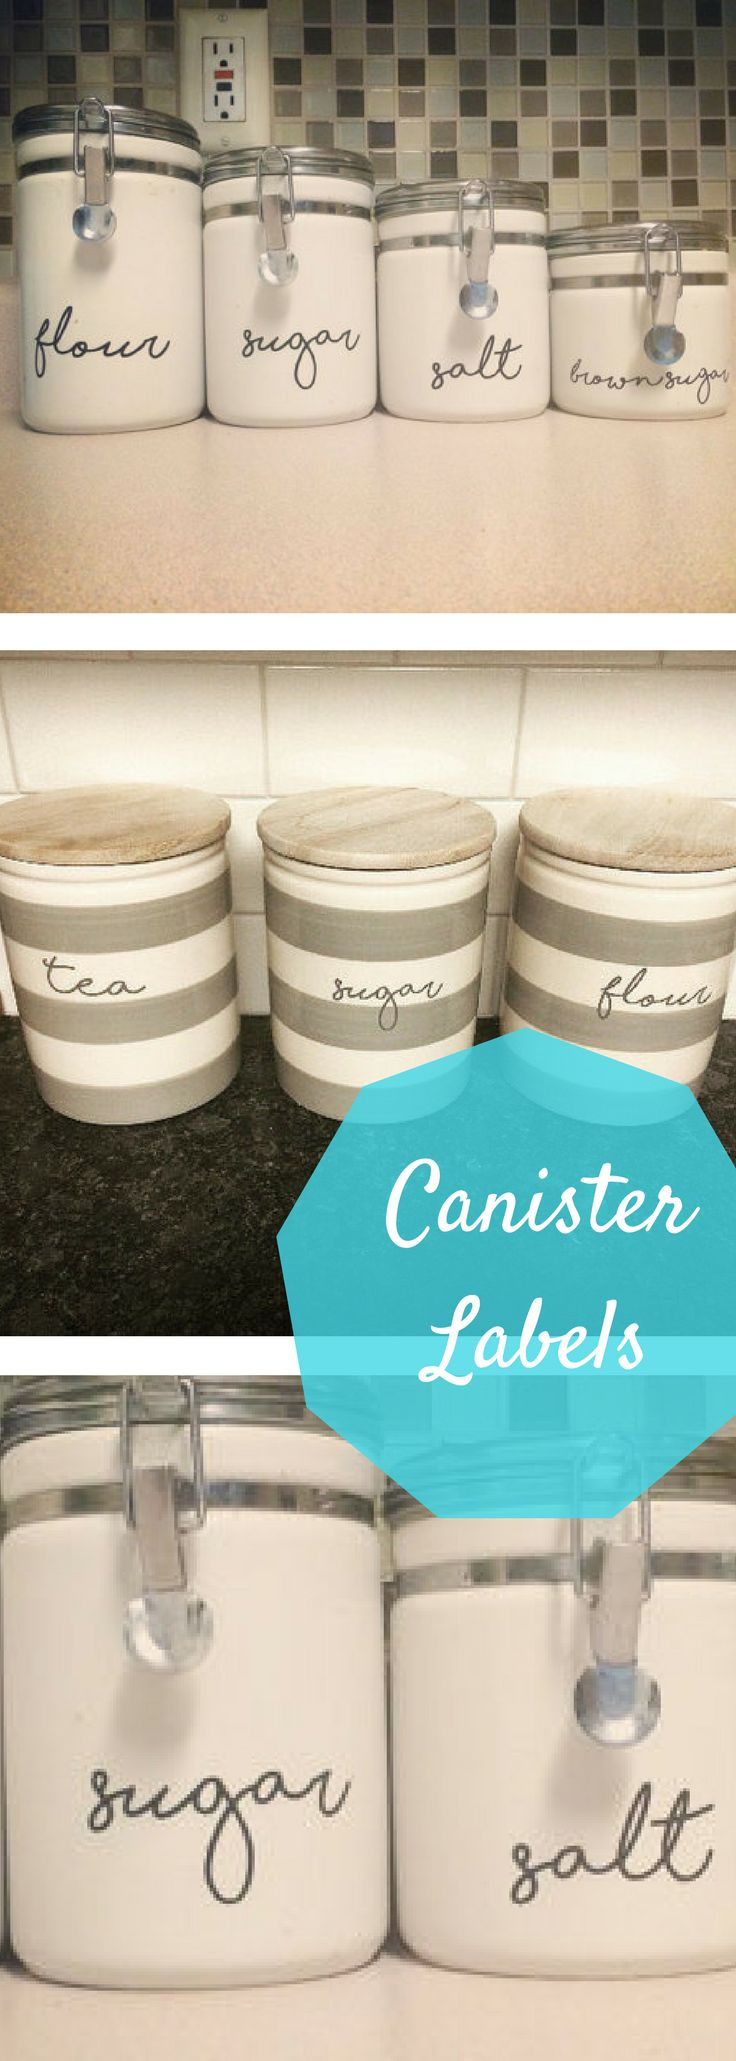 best 25 kitchen canisters ideas on pinterest canisters open kitchen canister labels kitchen accessories kitchen canister decal kitchen canister sticker kitchen